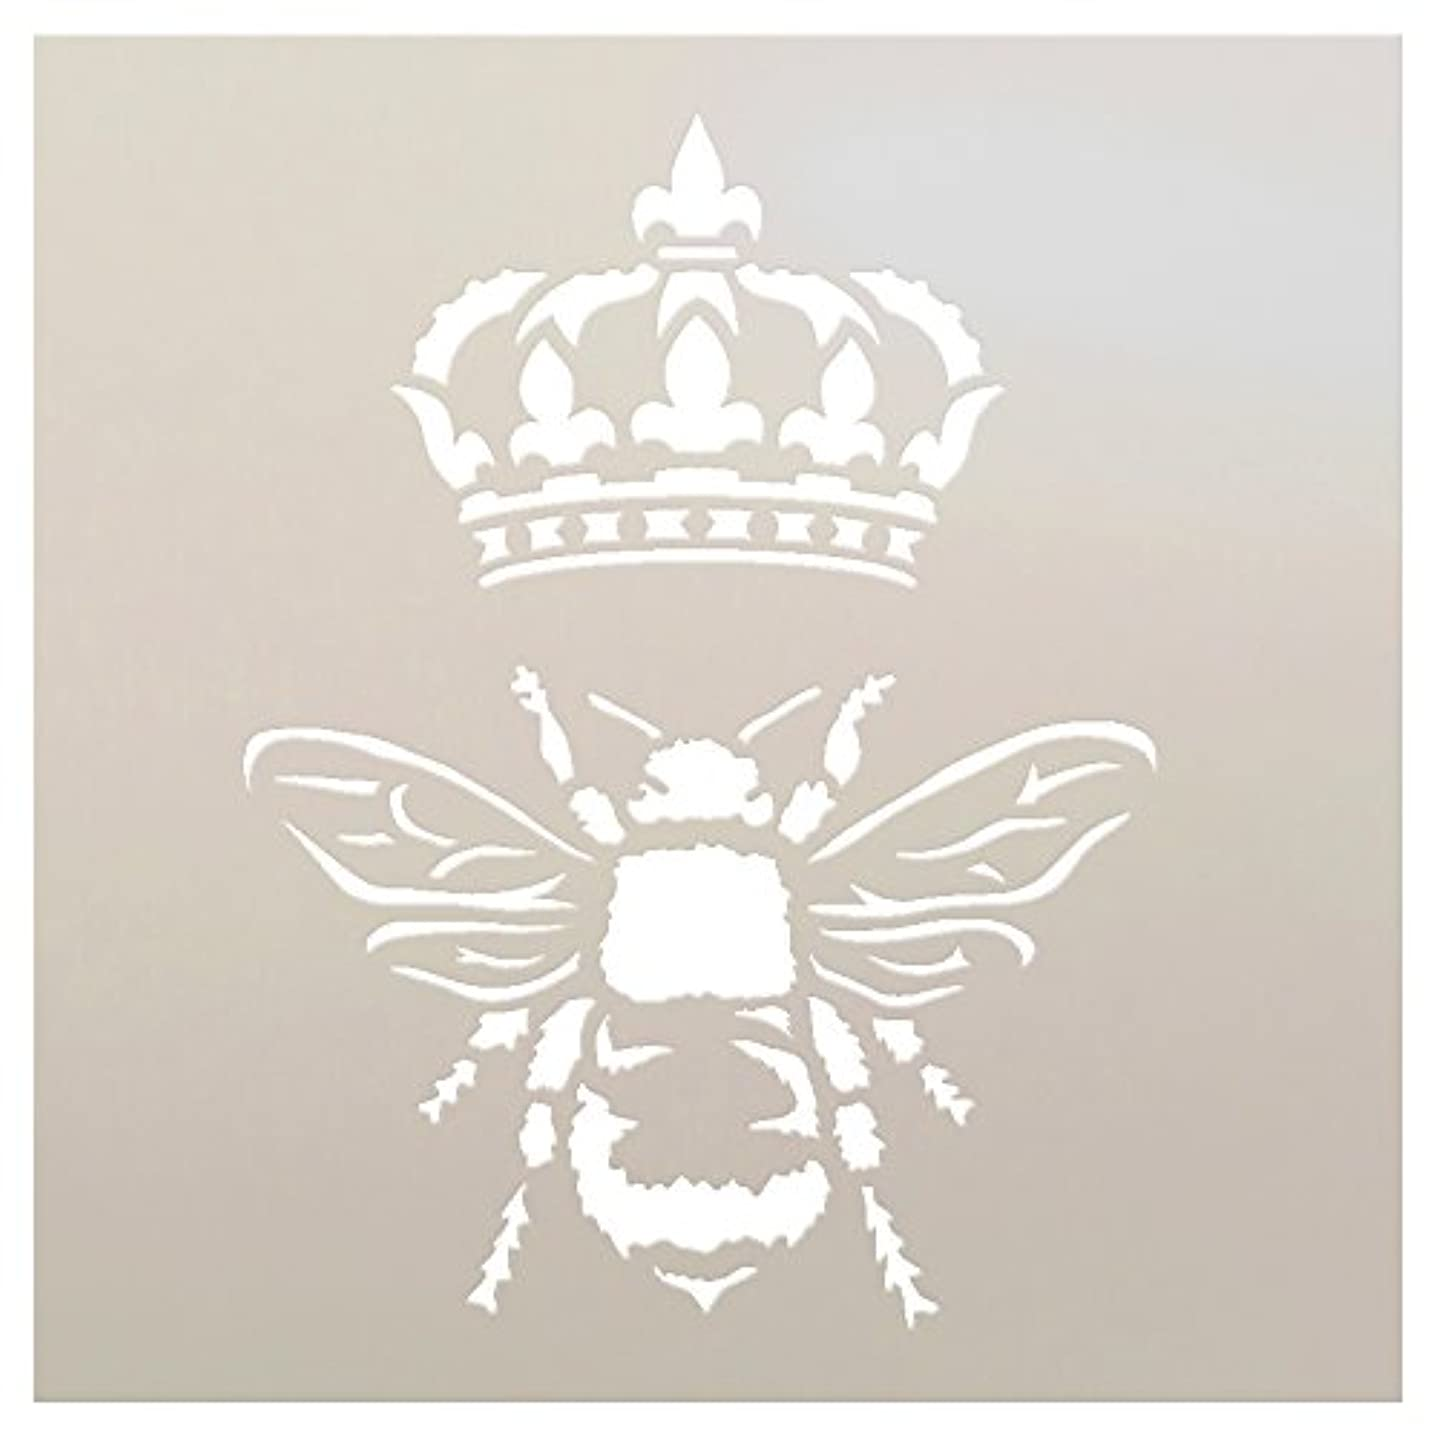 Queen Bee Crown Stencil by StudioR12   Reusable Mylar Template   Royal French, Painting, Chalk, Furniture, Mixed Media   Use for Crafting, DIY Home Decor   STCL1130   Select Sizes (9